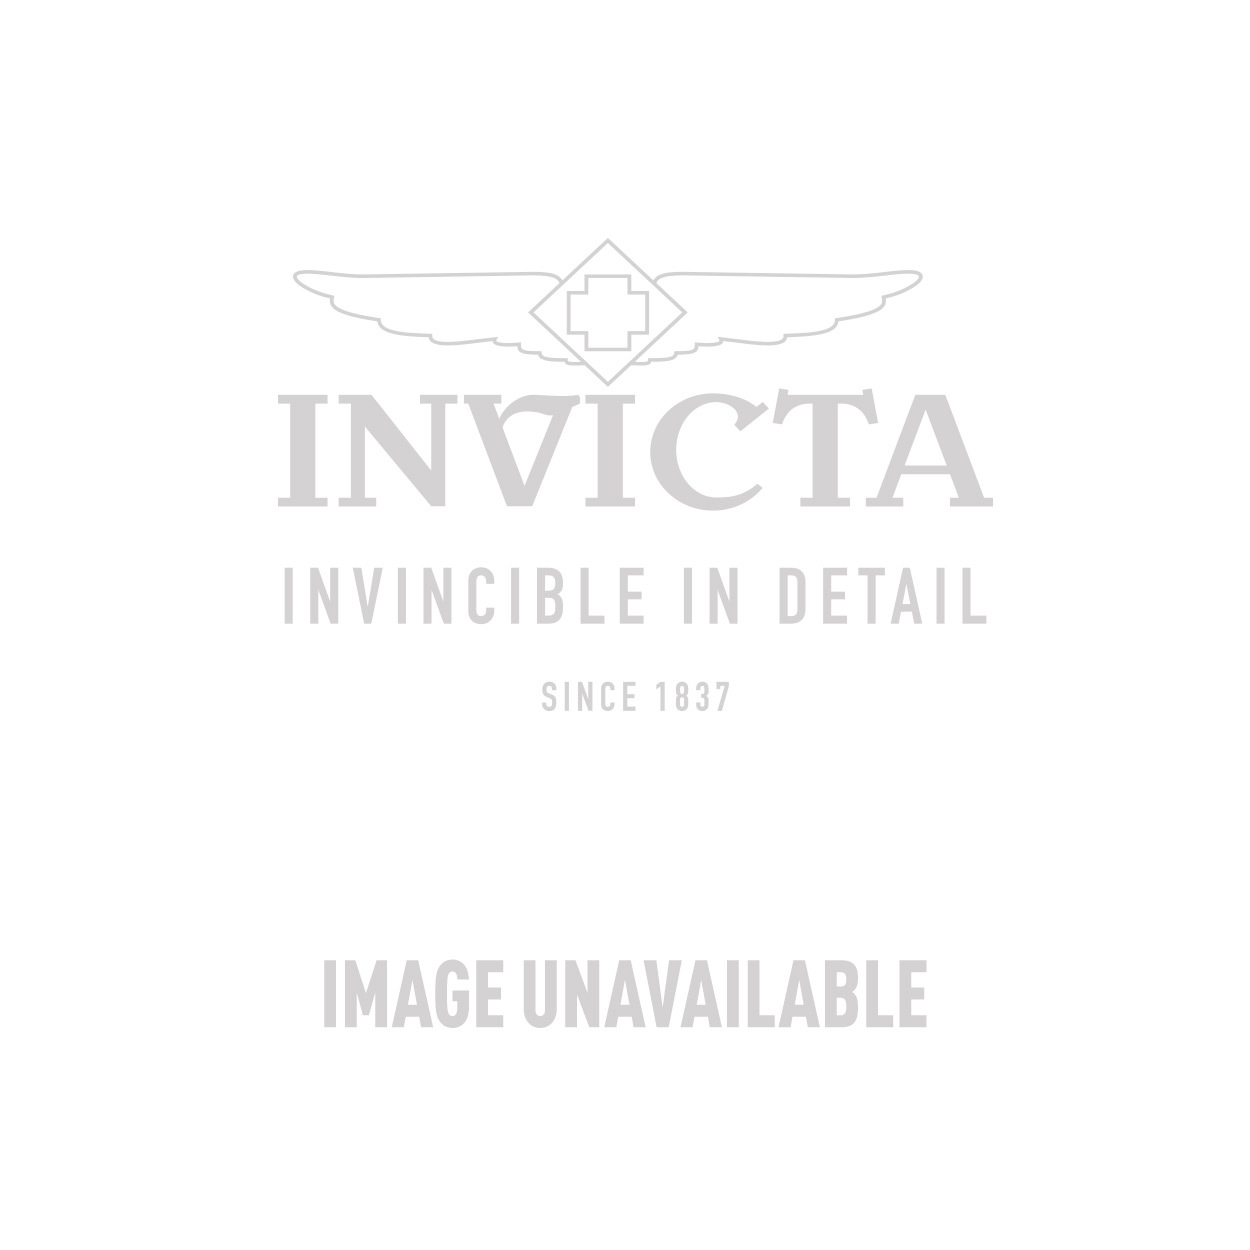 Invicta Vintage Mechanical Watch - Stainless Steel case with Black tone Leather band - Model 12403